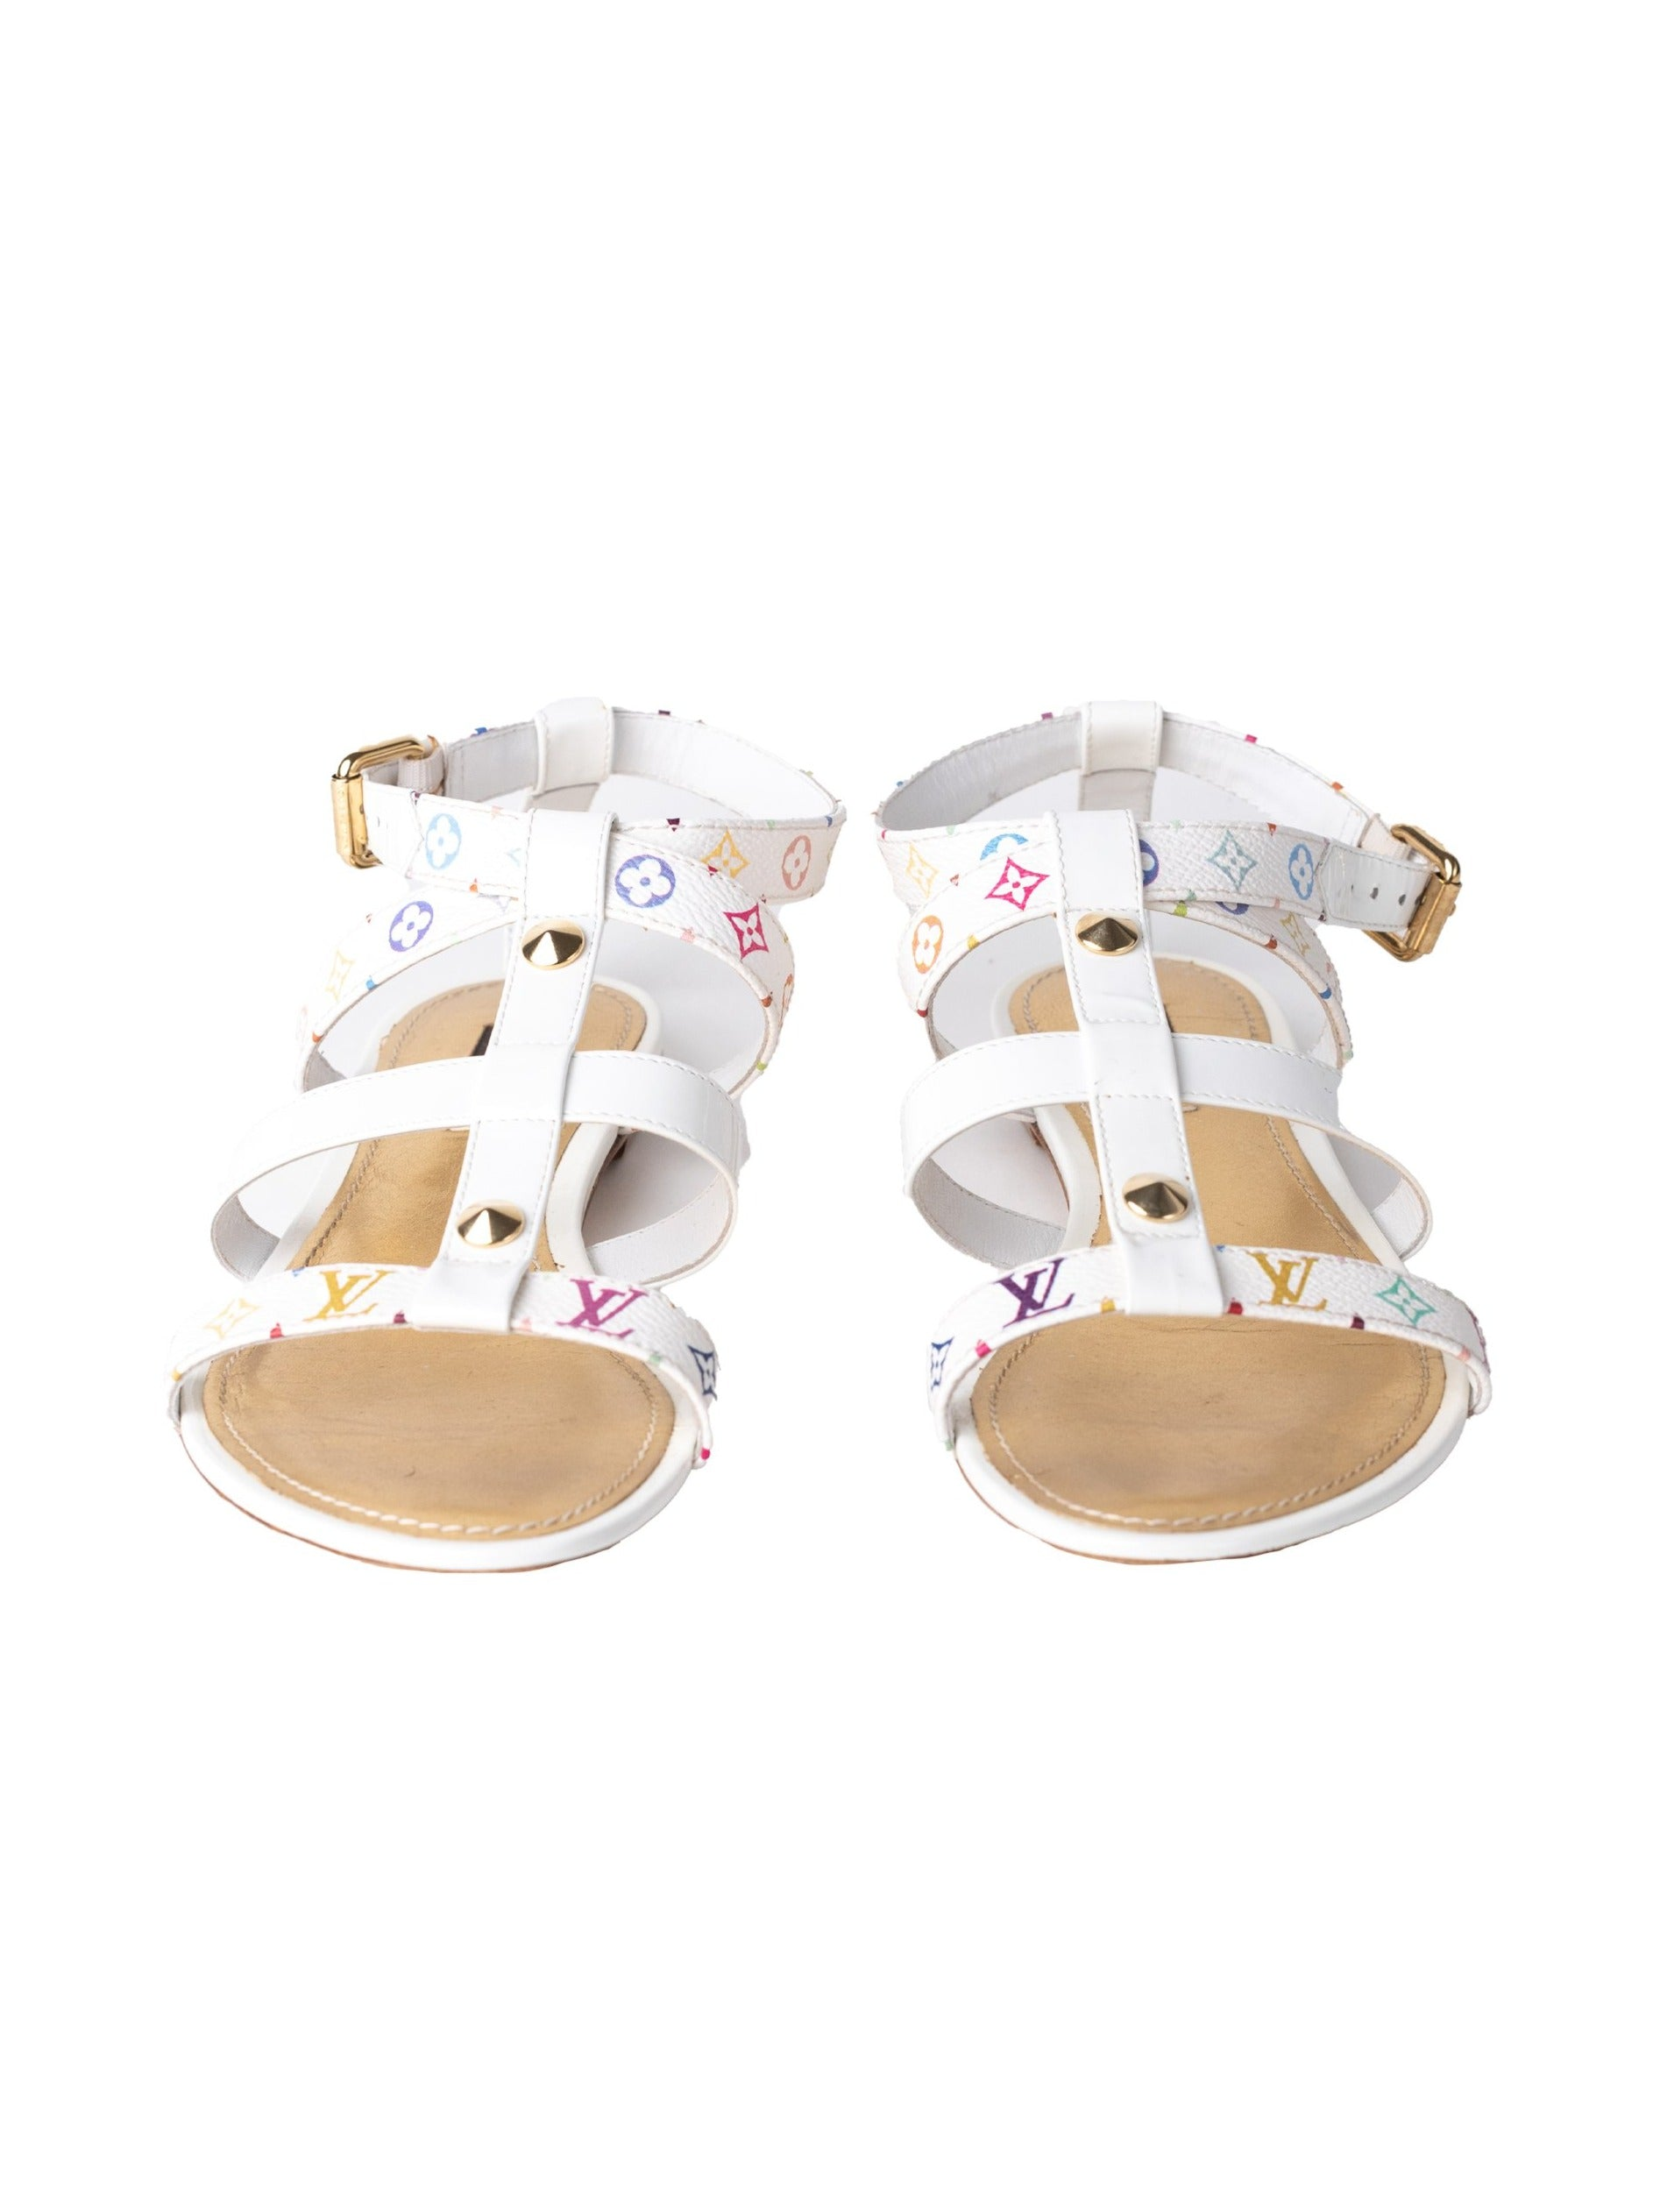 Louis Vuitton <br> 2003 Takashi Murakami monogram logo studded gladiator sandals